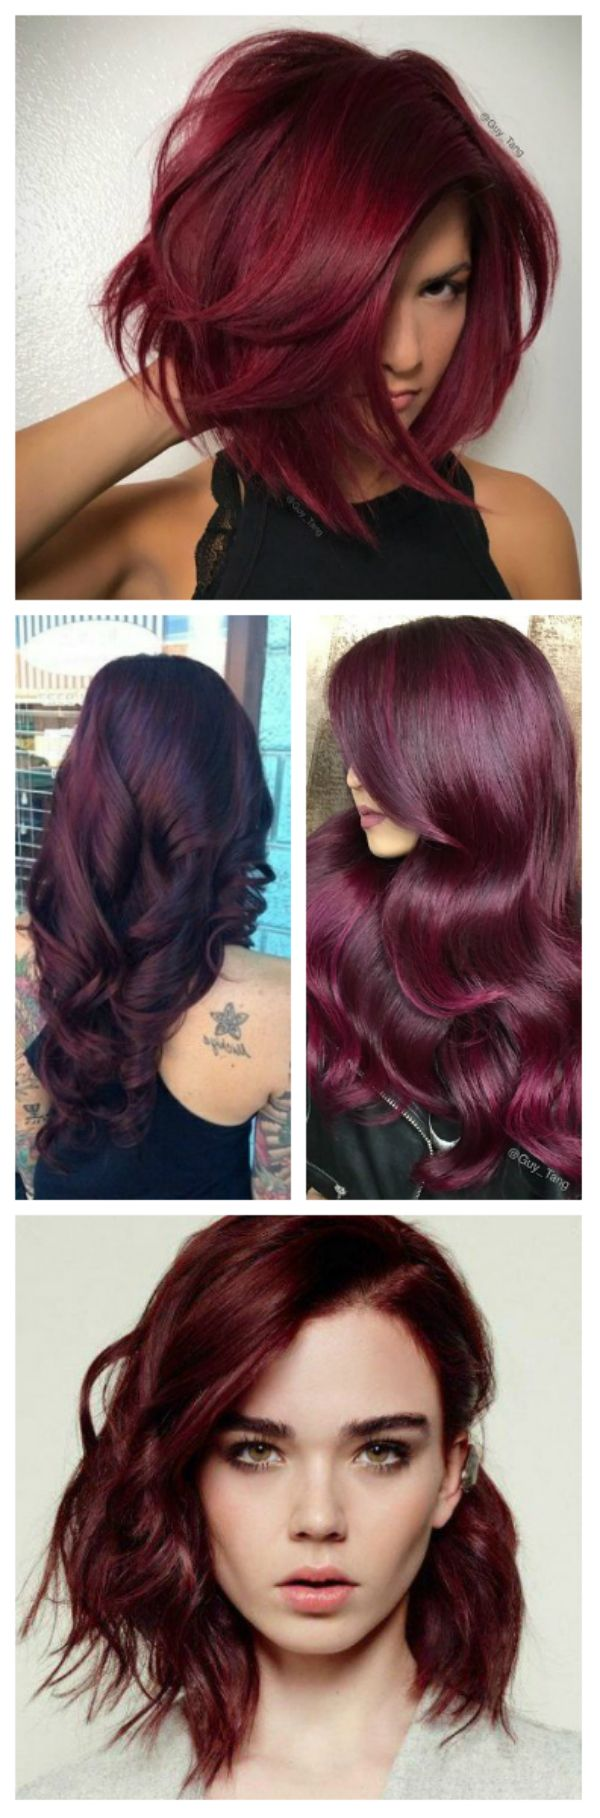 Cherry hair color is very rich, deep red with a touch of blue/brown for short, medium and long hair & it looks best on darker skin tones